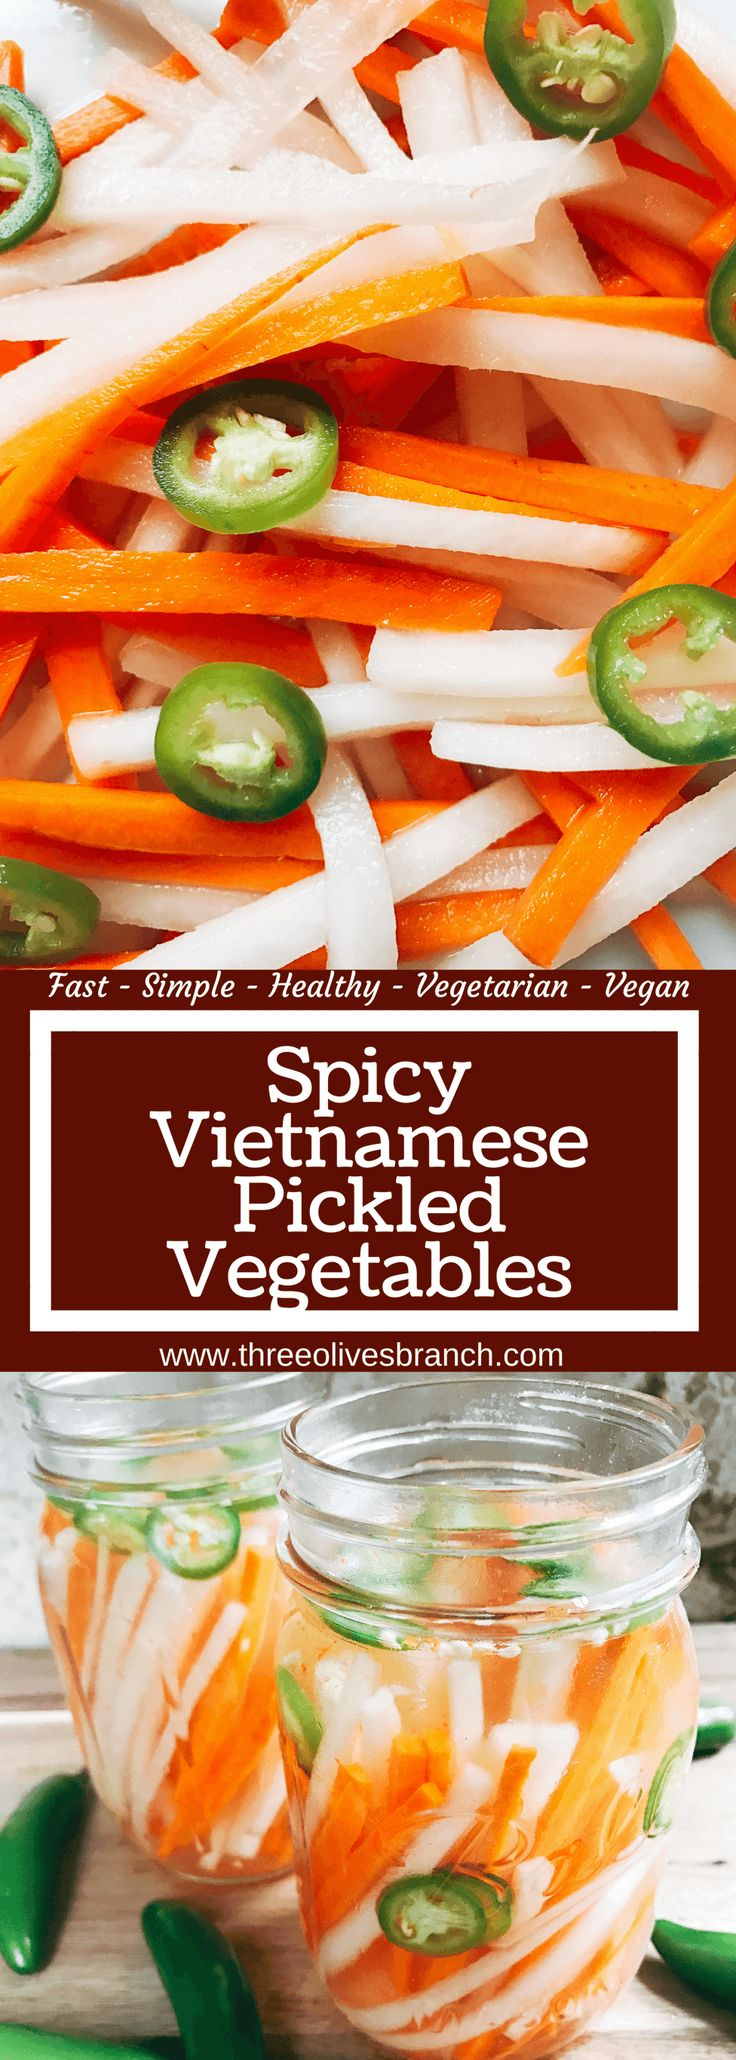 Simple and easy pickled vegetables perfect for your banh mi! Use as a quick condiment on your favorite foods. Daikon radish and carrots are made spicy with serrano. A rice vinegar base is ready in just minutes for this classic Vietnamese slaw. Use cucumber or your favorite vegetables. Vegan and vegetarian. Spicy Vietnamese Pickled Vegetables | Three Olives Branch | www.threeolivesbranch.com #banhmi #pickledvegetables #pickledveggies #vietnameserecipe